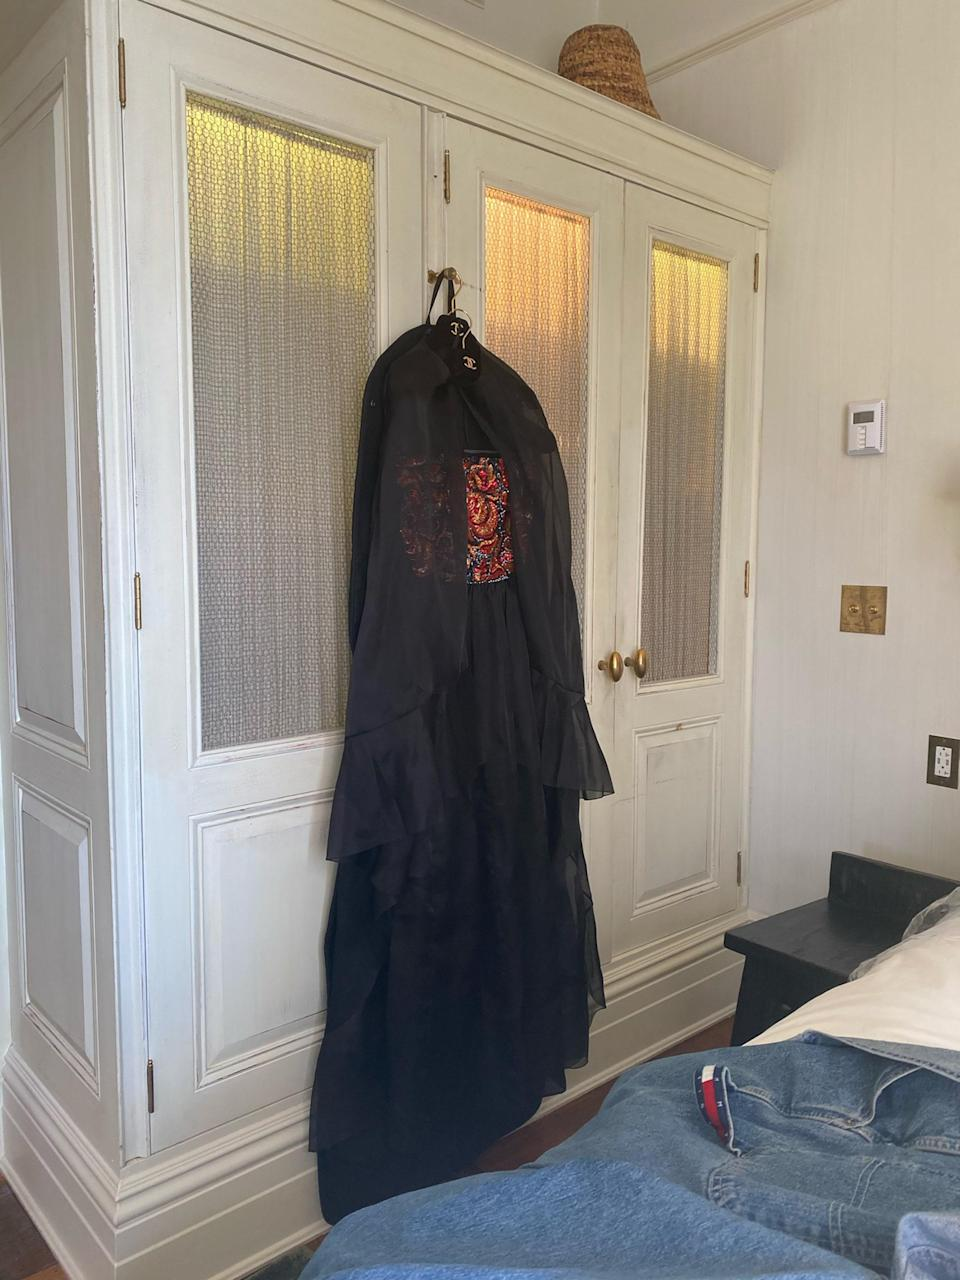 My beautiful CHANEL dress and cape… the details and colors in the bodice were so gorgeous and intricate. + my after-after party overalls laying there in jealousy.